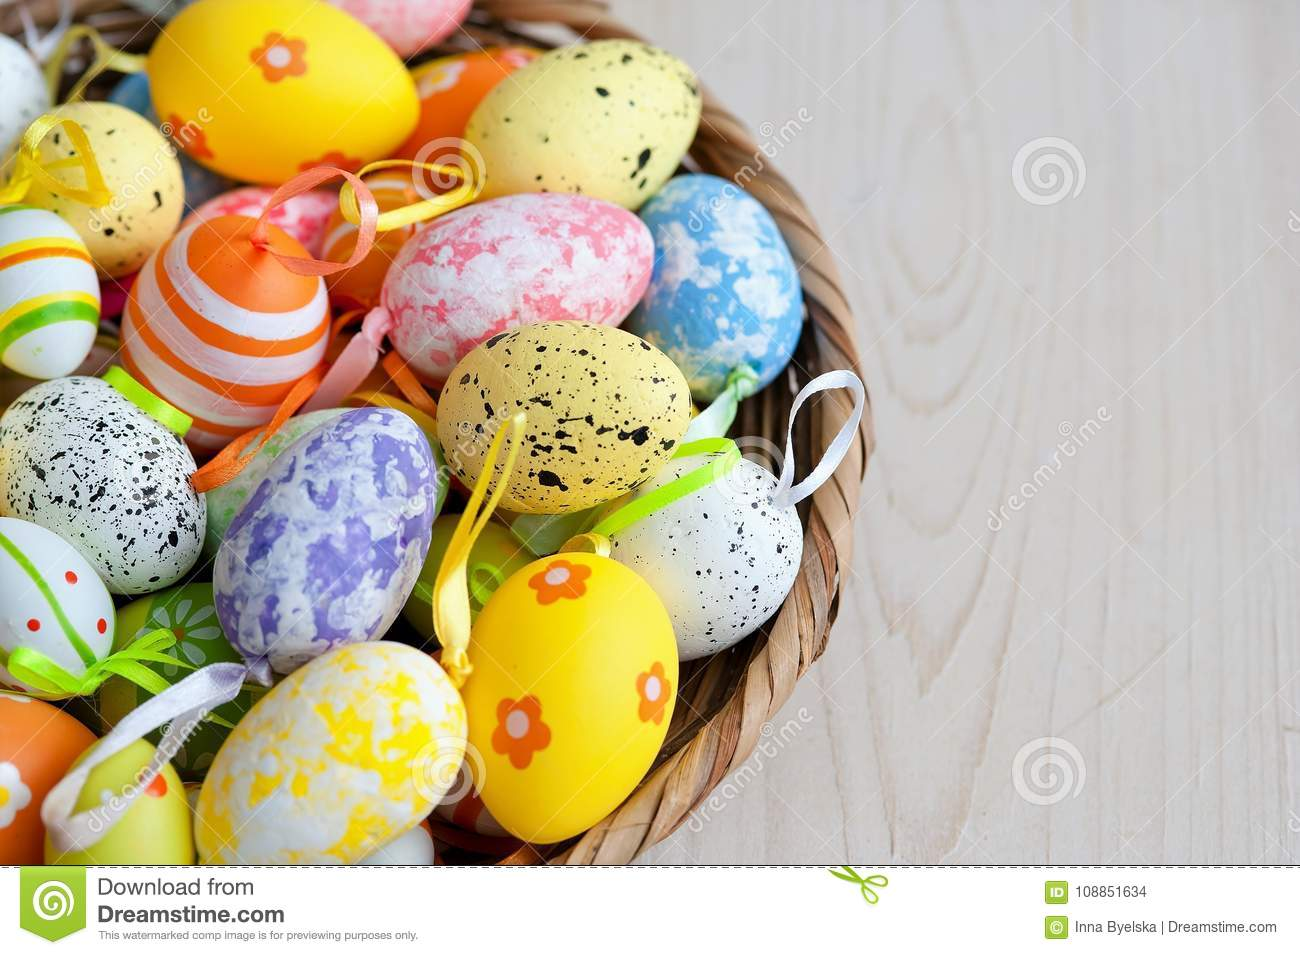 Different Variations Of Easter Eggs In A Wicker Plate On A Light